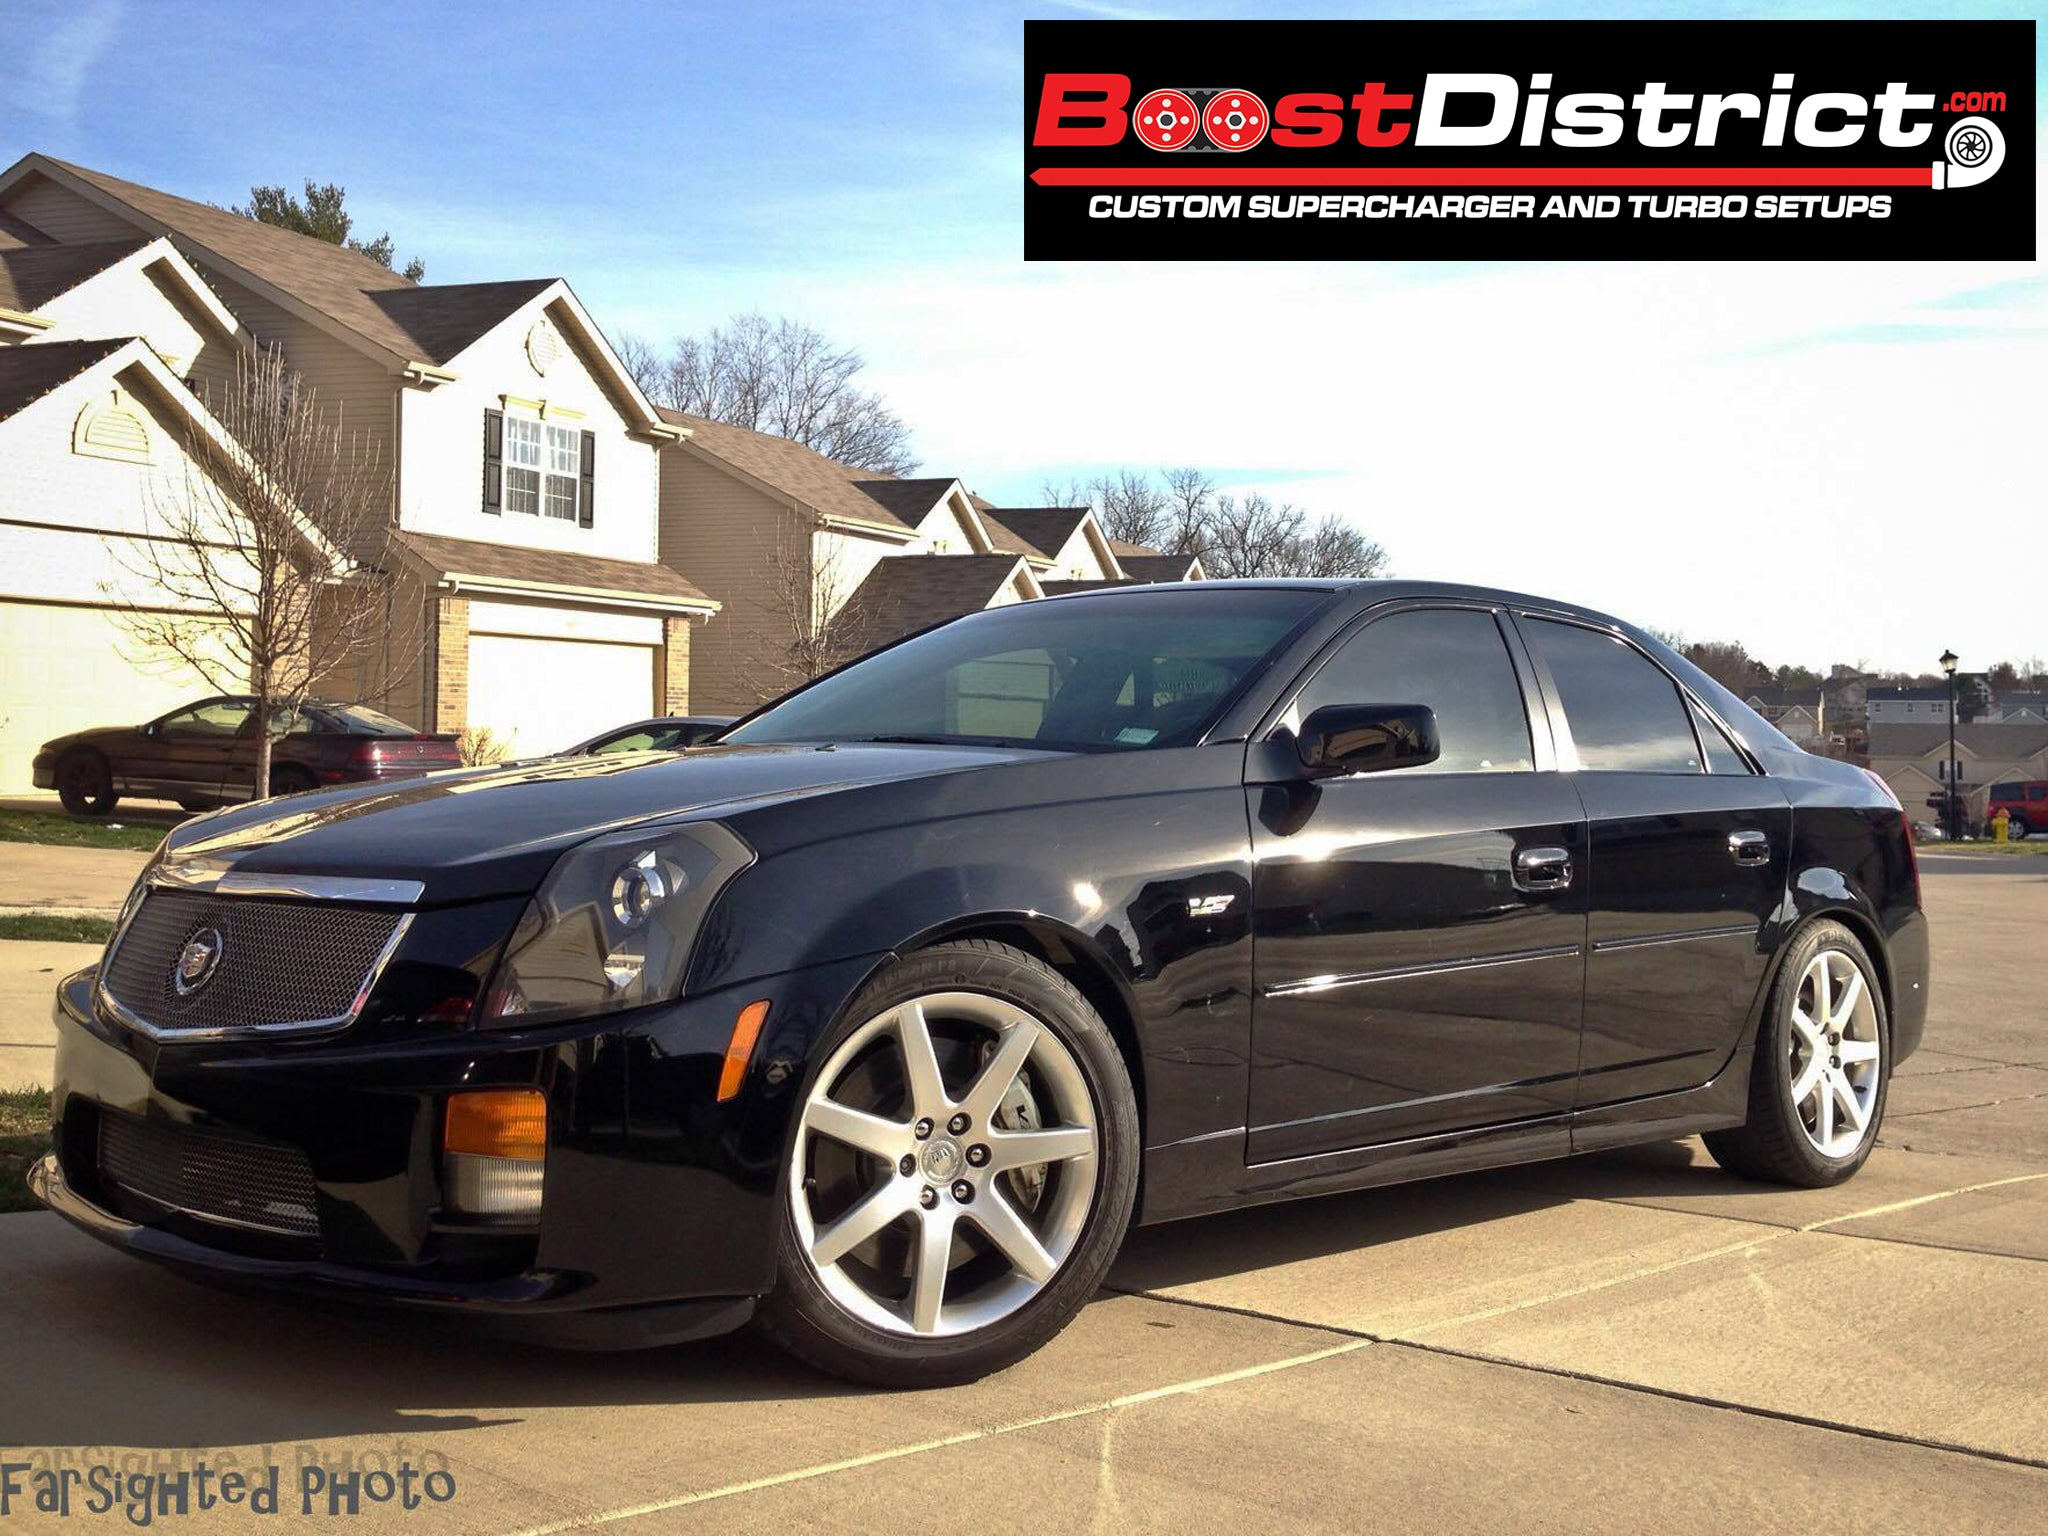 2005 Cadillac Cts Throttle Body Wiring Harness Free Download Oasis 2003 2004 05 V Ls6 Supercharger Kit Boostdistrict Stock Rims At